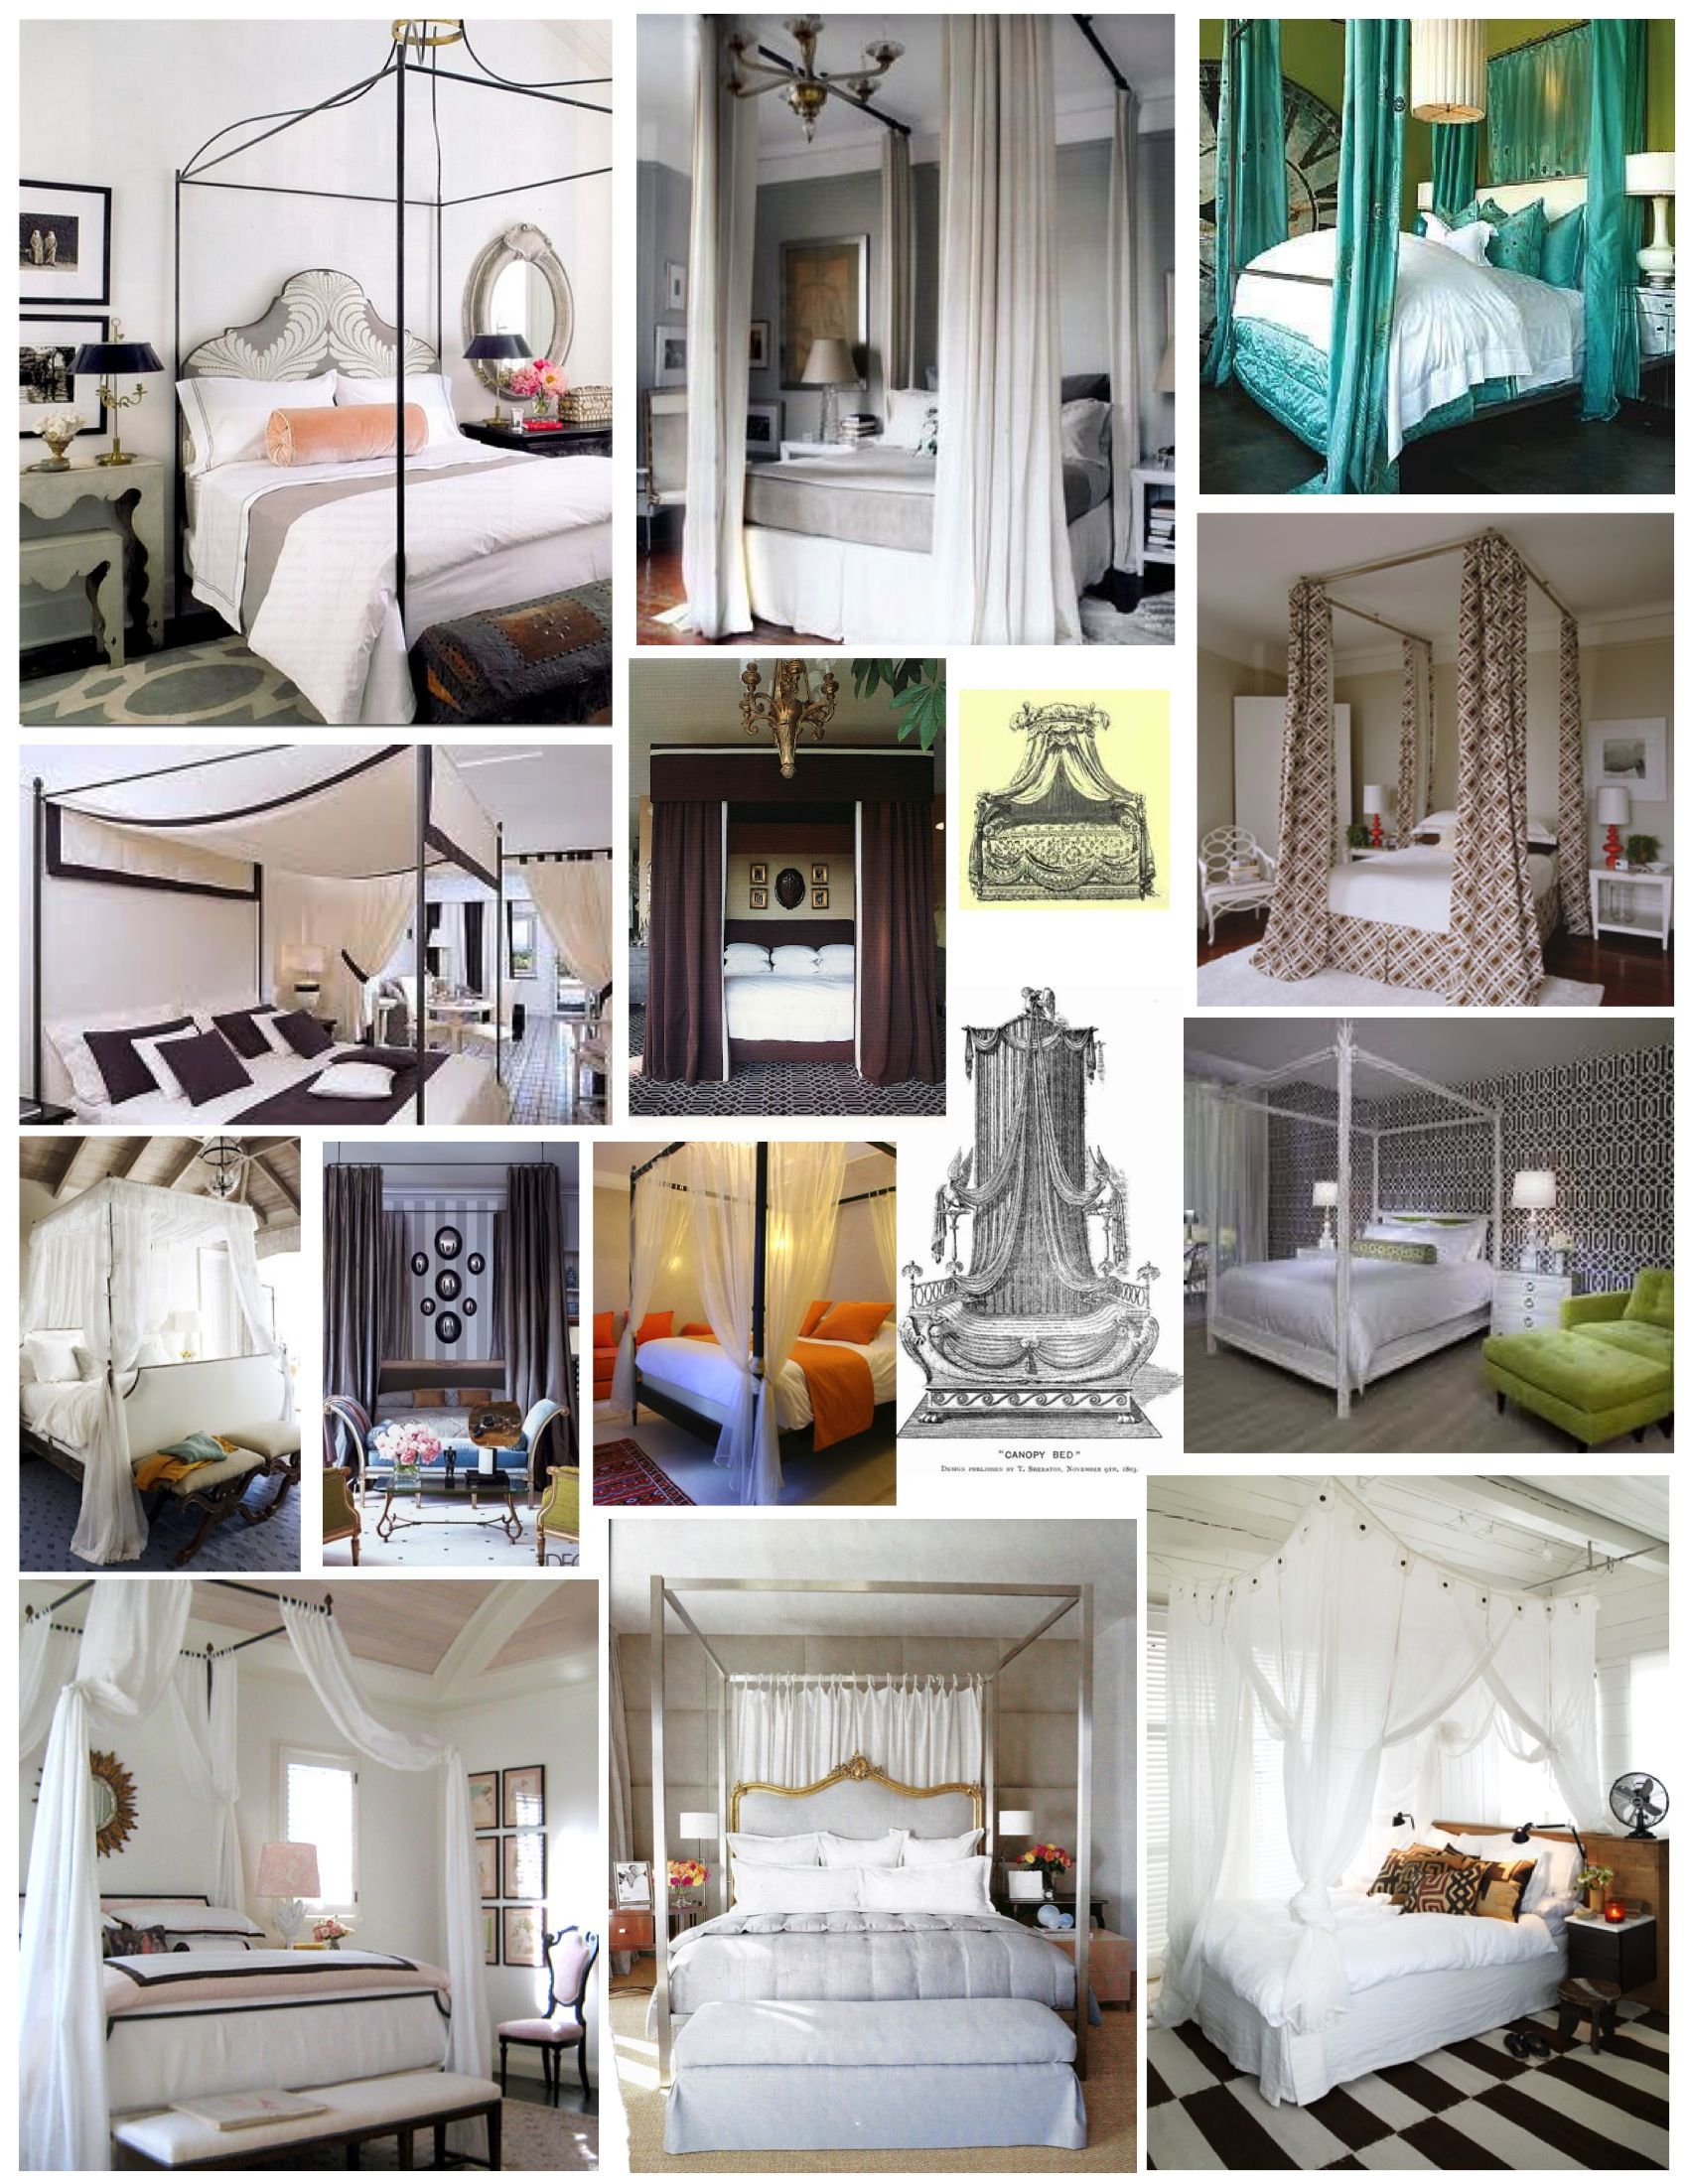 A Canopy Bed a canopy of style: the canopy bed | house appeal